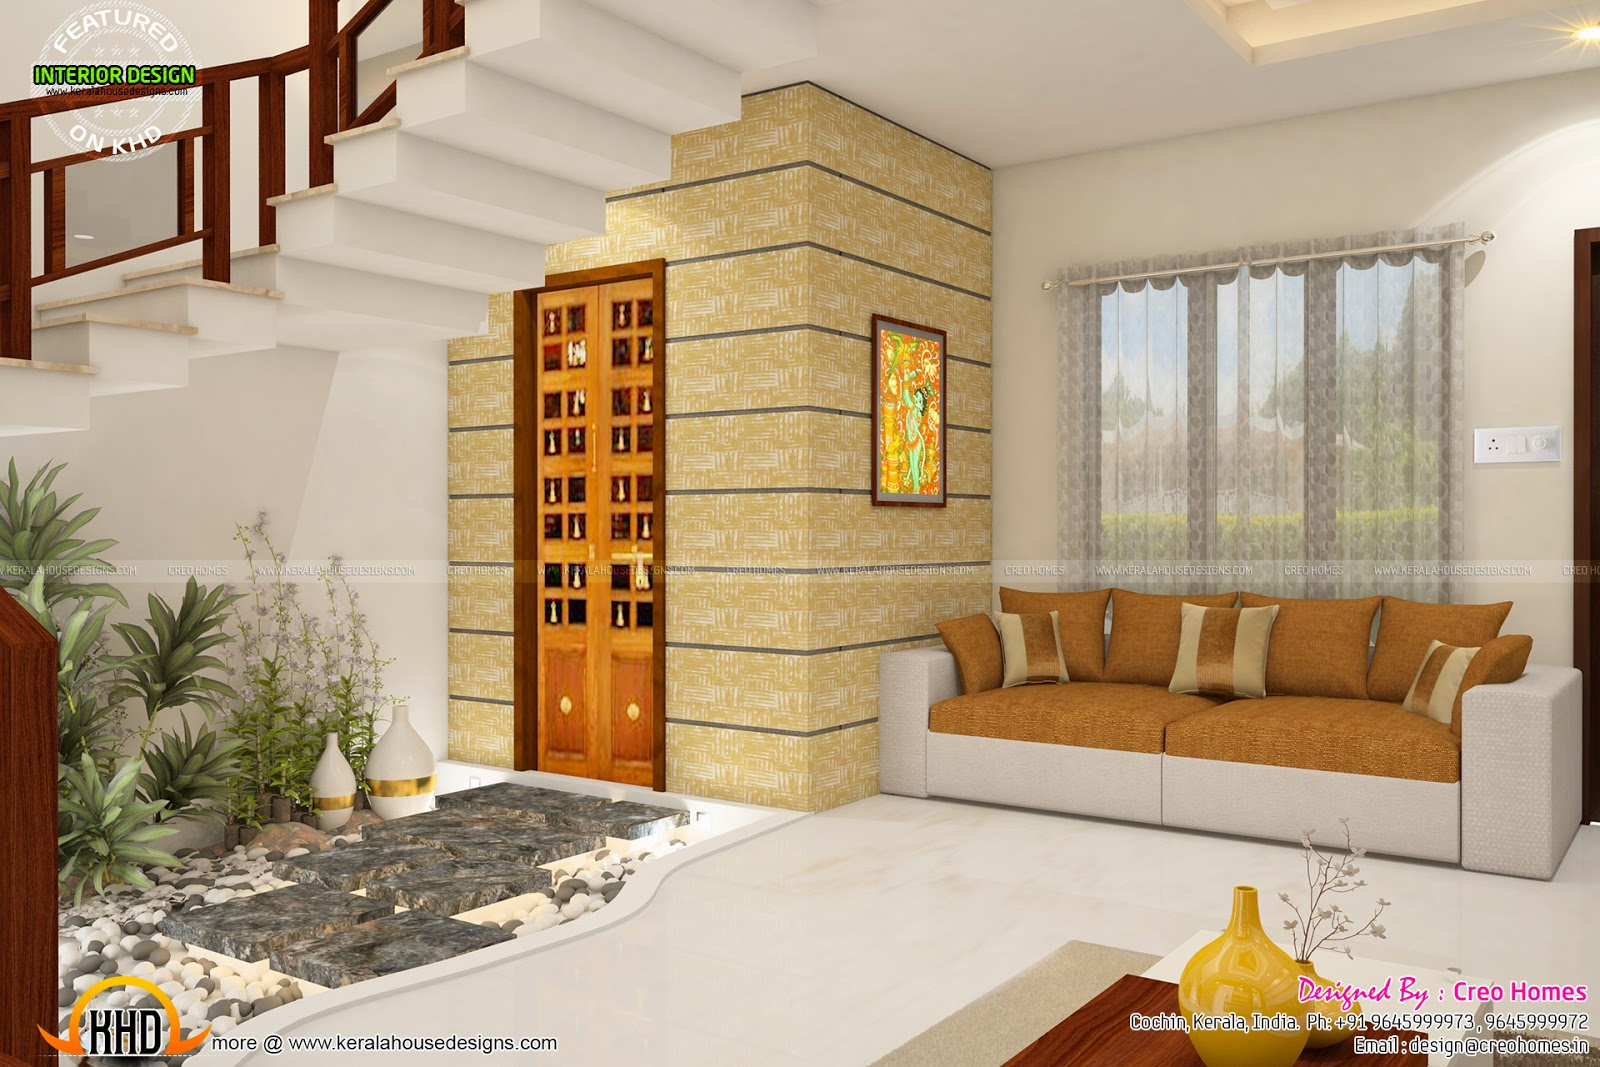 Total home interior solutions by creo homes kerala home for House design interior decorating